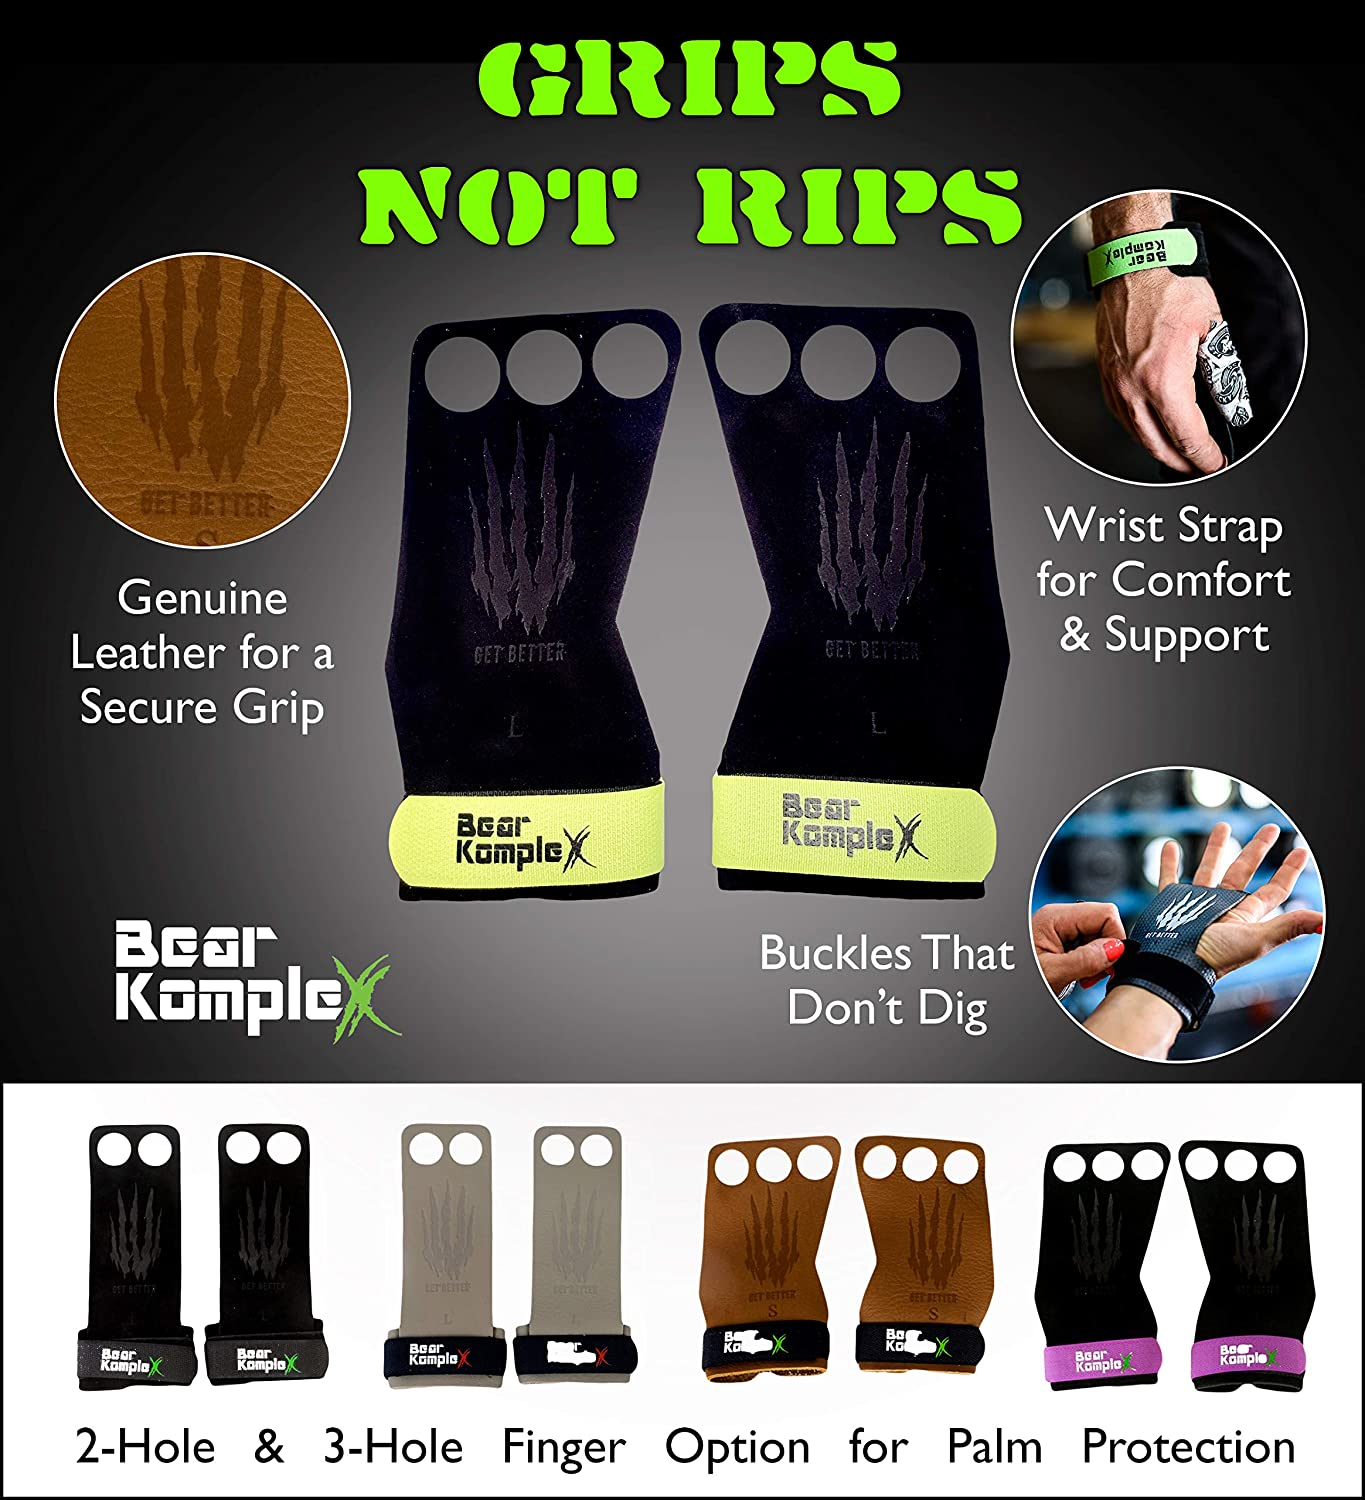 Bear KompleX 3 Hole Leather Hand Grips for Gymnastics Hand Protection from Rips and Blisters for Men and Women. Comfort and Support Pull-ups Weightlifting Crossfit WODs with Wrist Straps